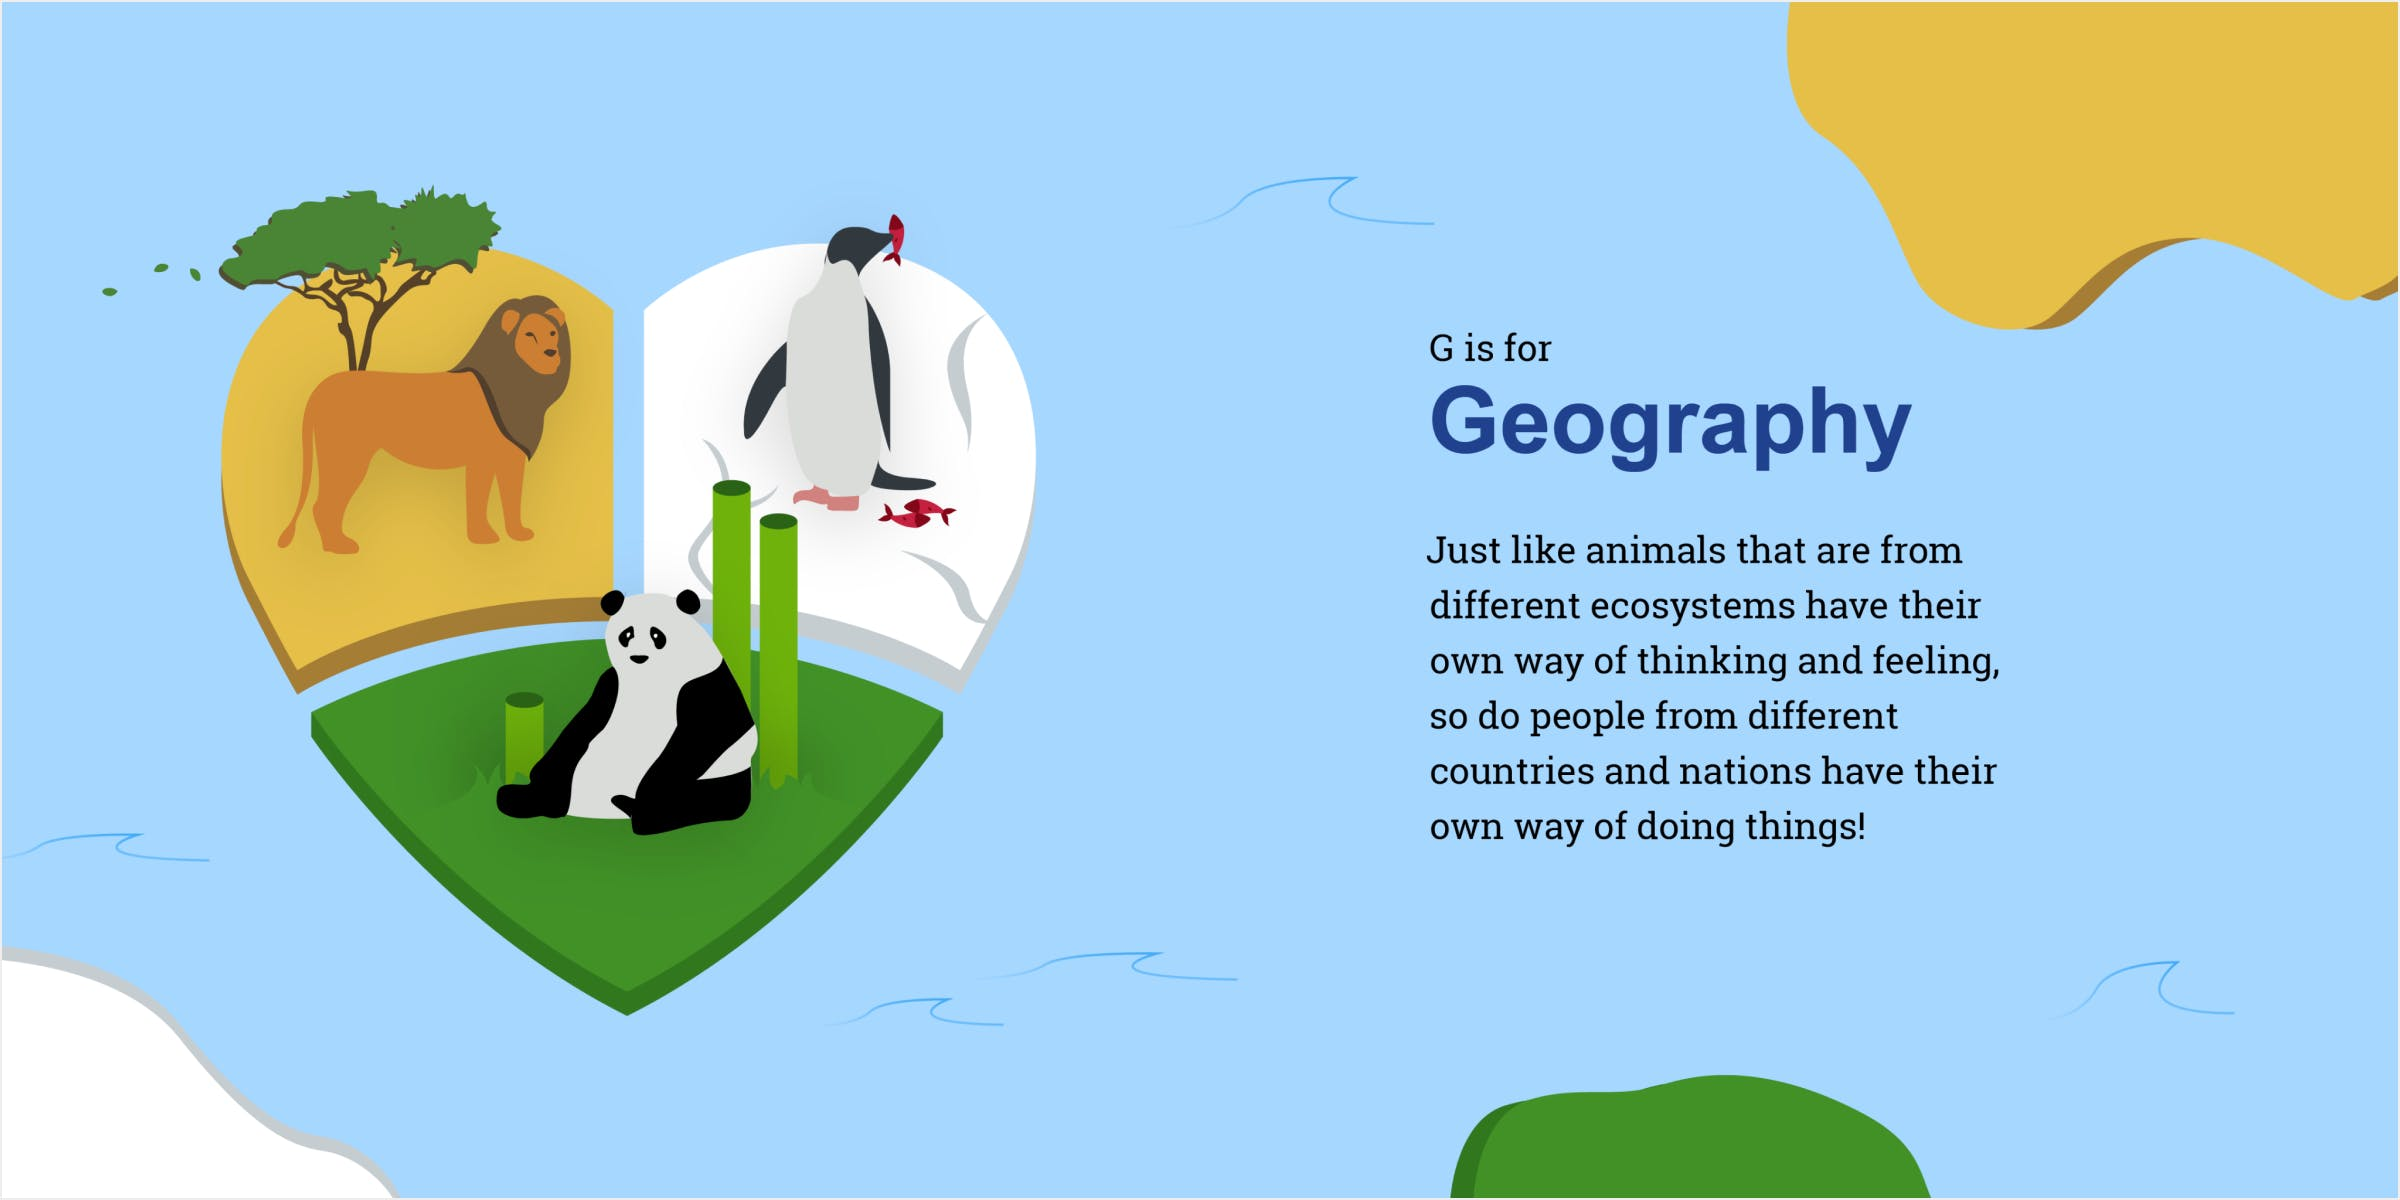 Mockup of geography spread in a book. Continents featuring different animals and habitats align to create a heart shape.